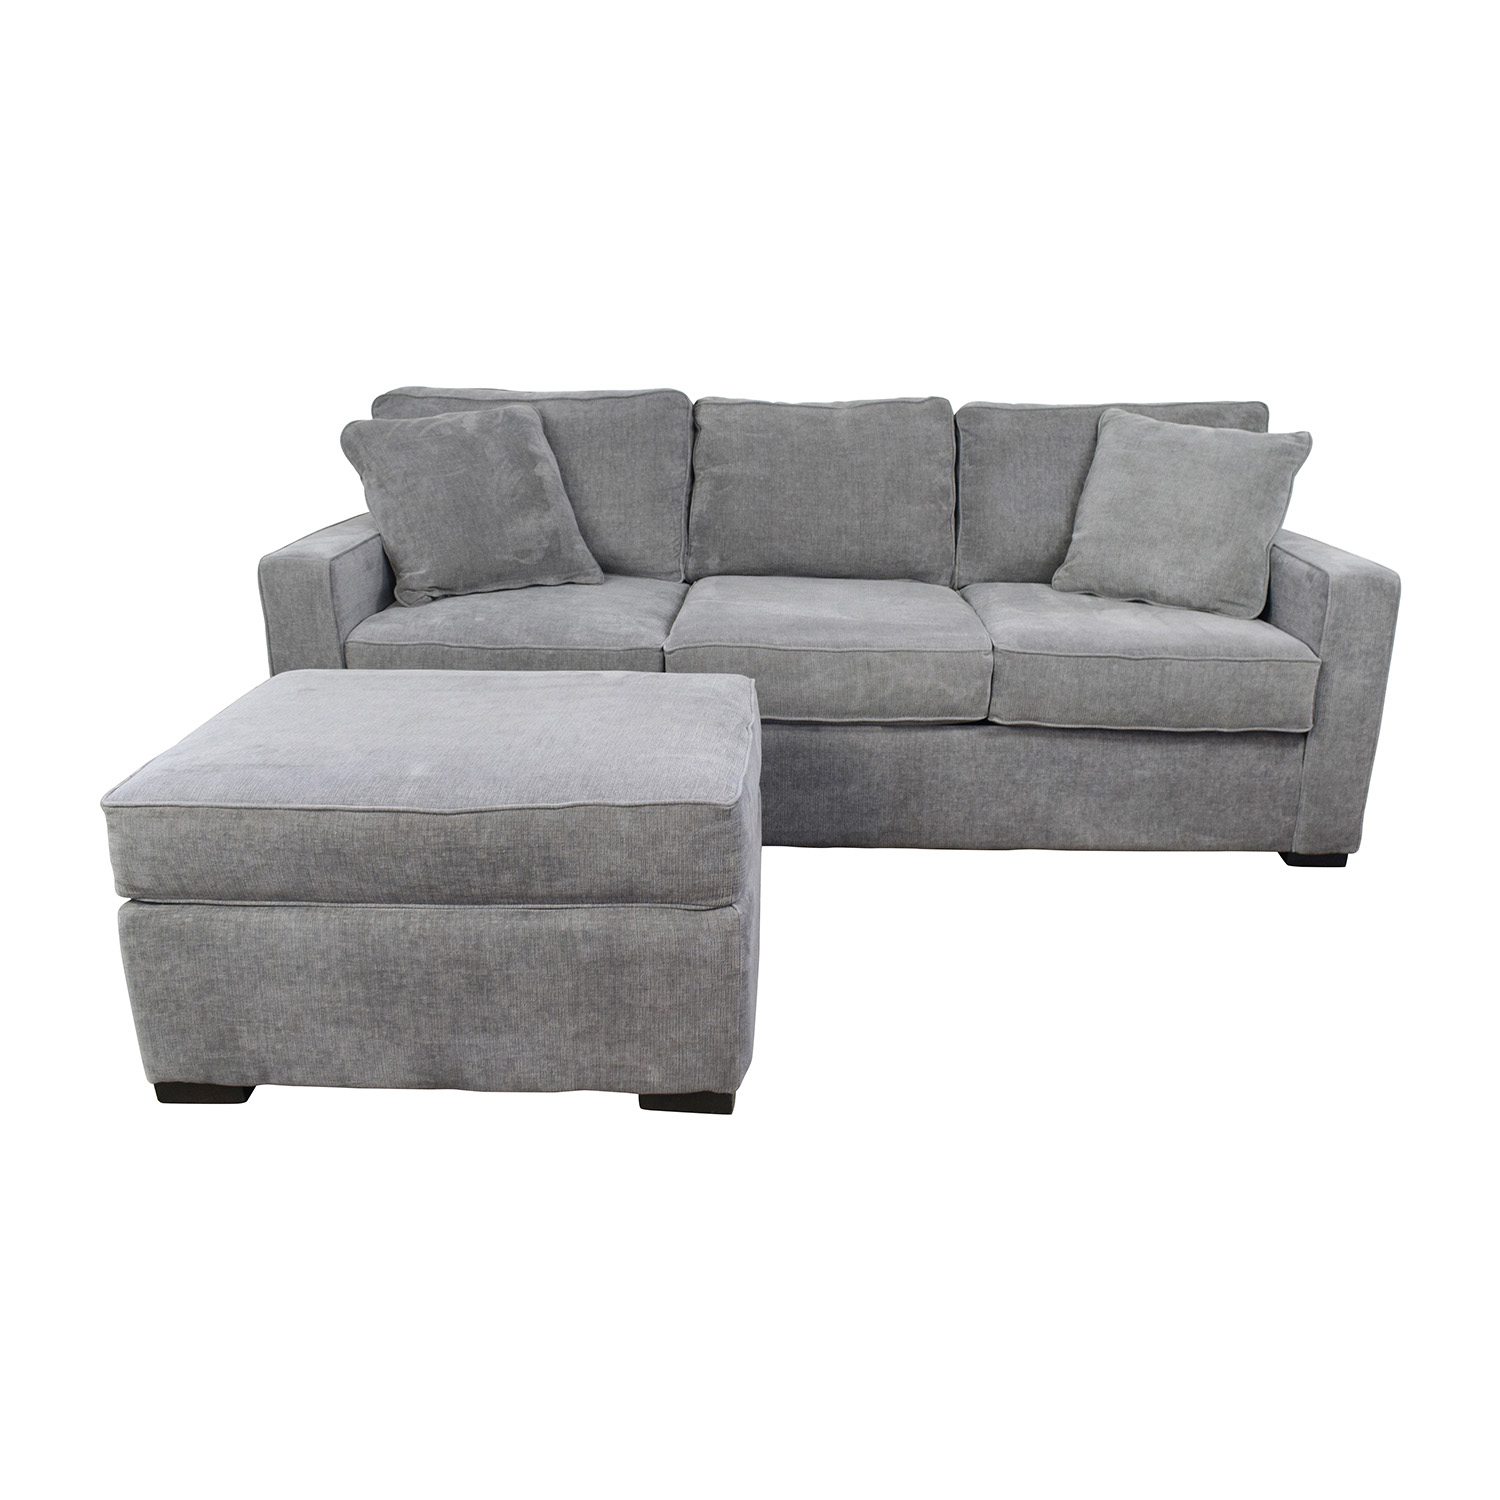 Macys Radley Grey Sofa And Ottoman Nyc